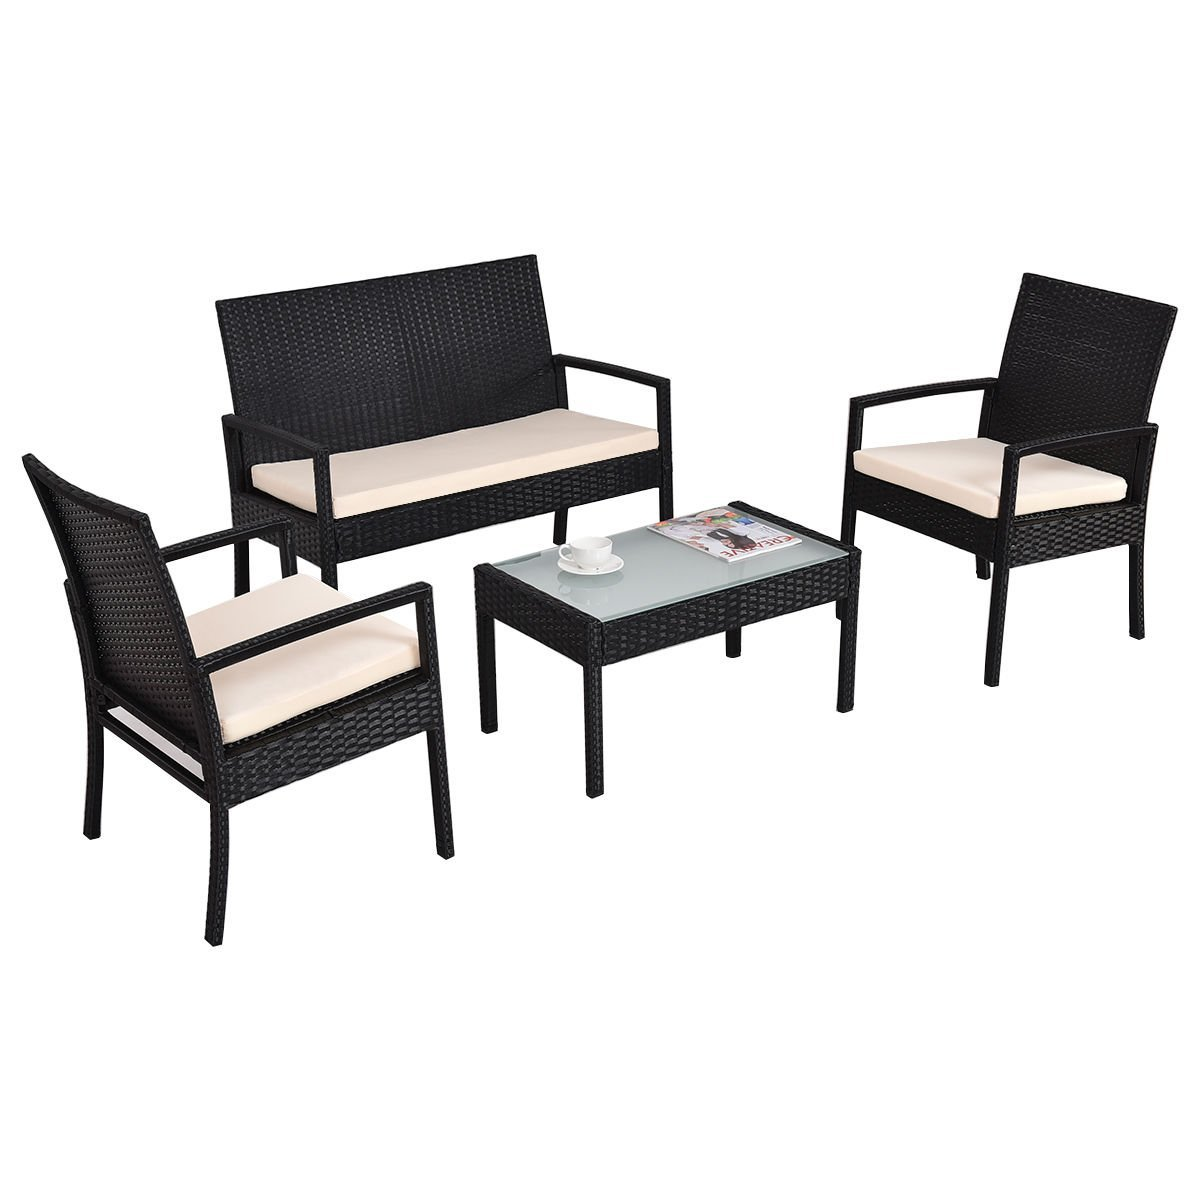 Get Quotations New Mtn G 4 Pcs Outdoor Patio Rattan Furniture Set Table Chair Sofa Cushioned Seat